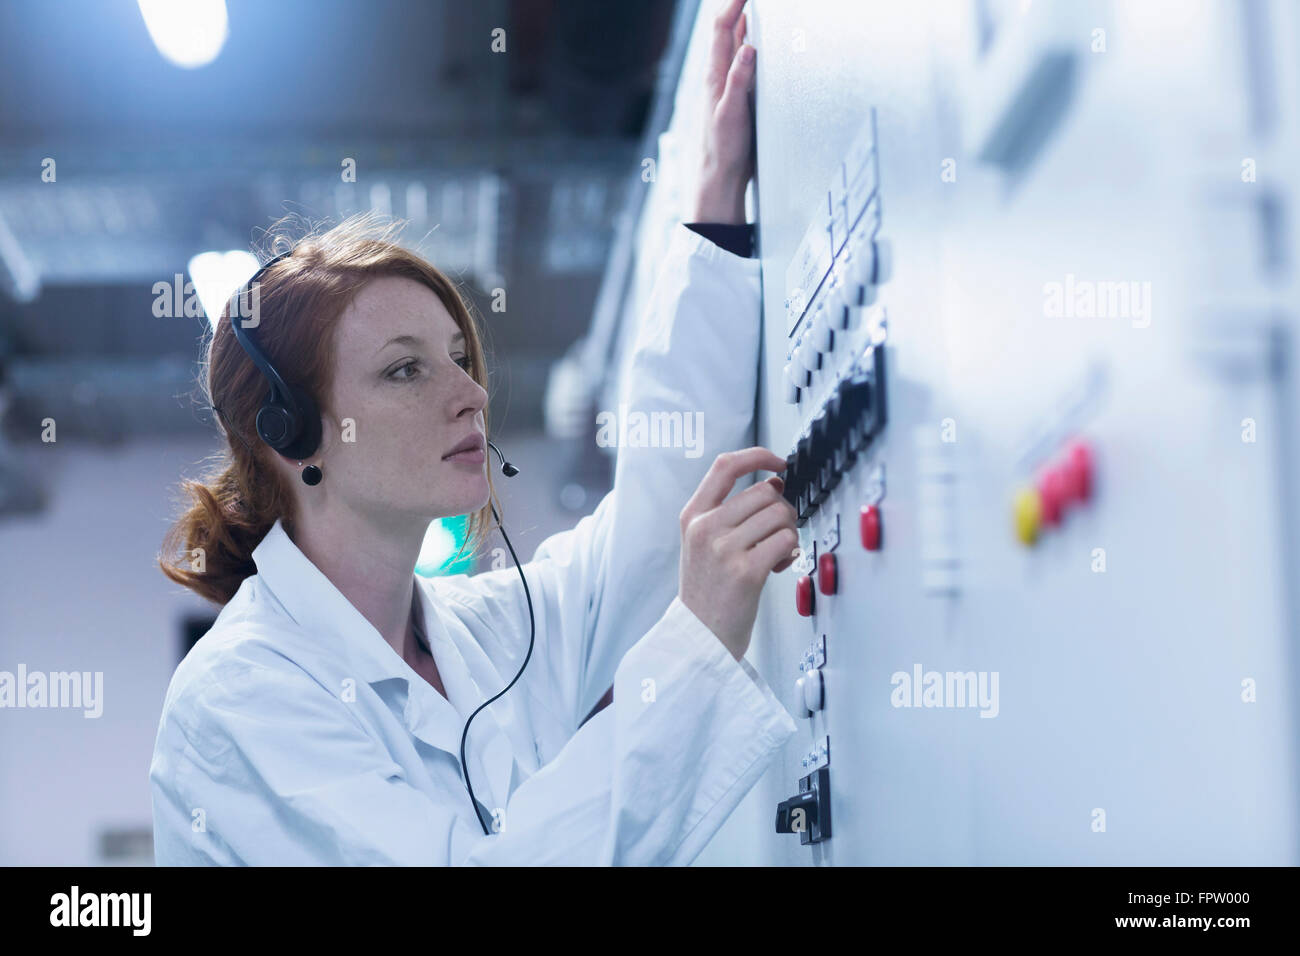 Young female engineer wearing headset and controlling a switch gear in control room, Baden-Württemberg, Germany Stock Photo